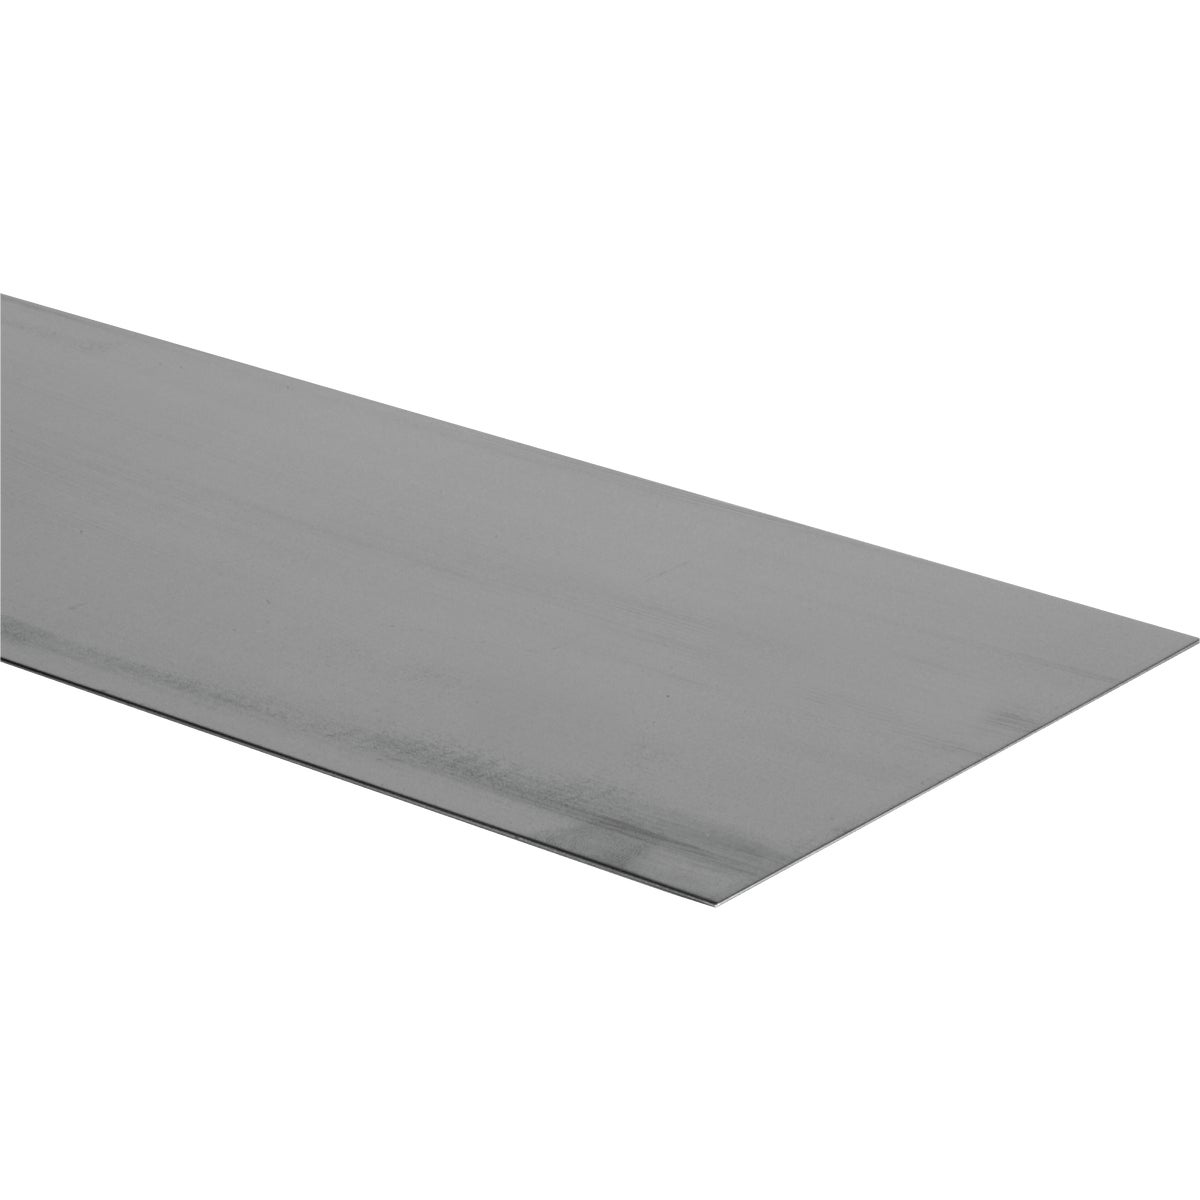 6X18 16GA STEEL SHEET - N301556 by National Mfg Co